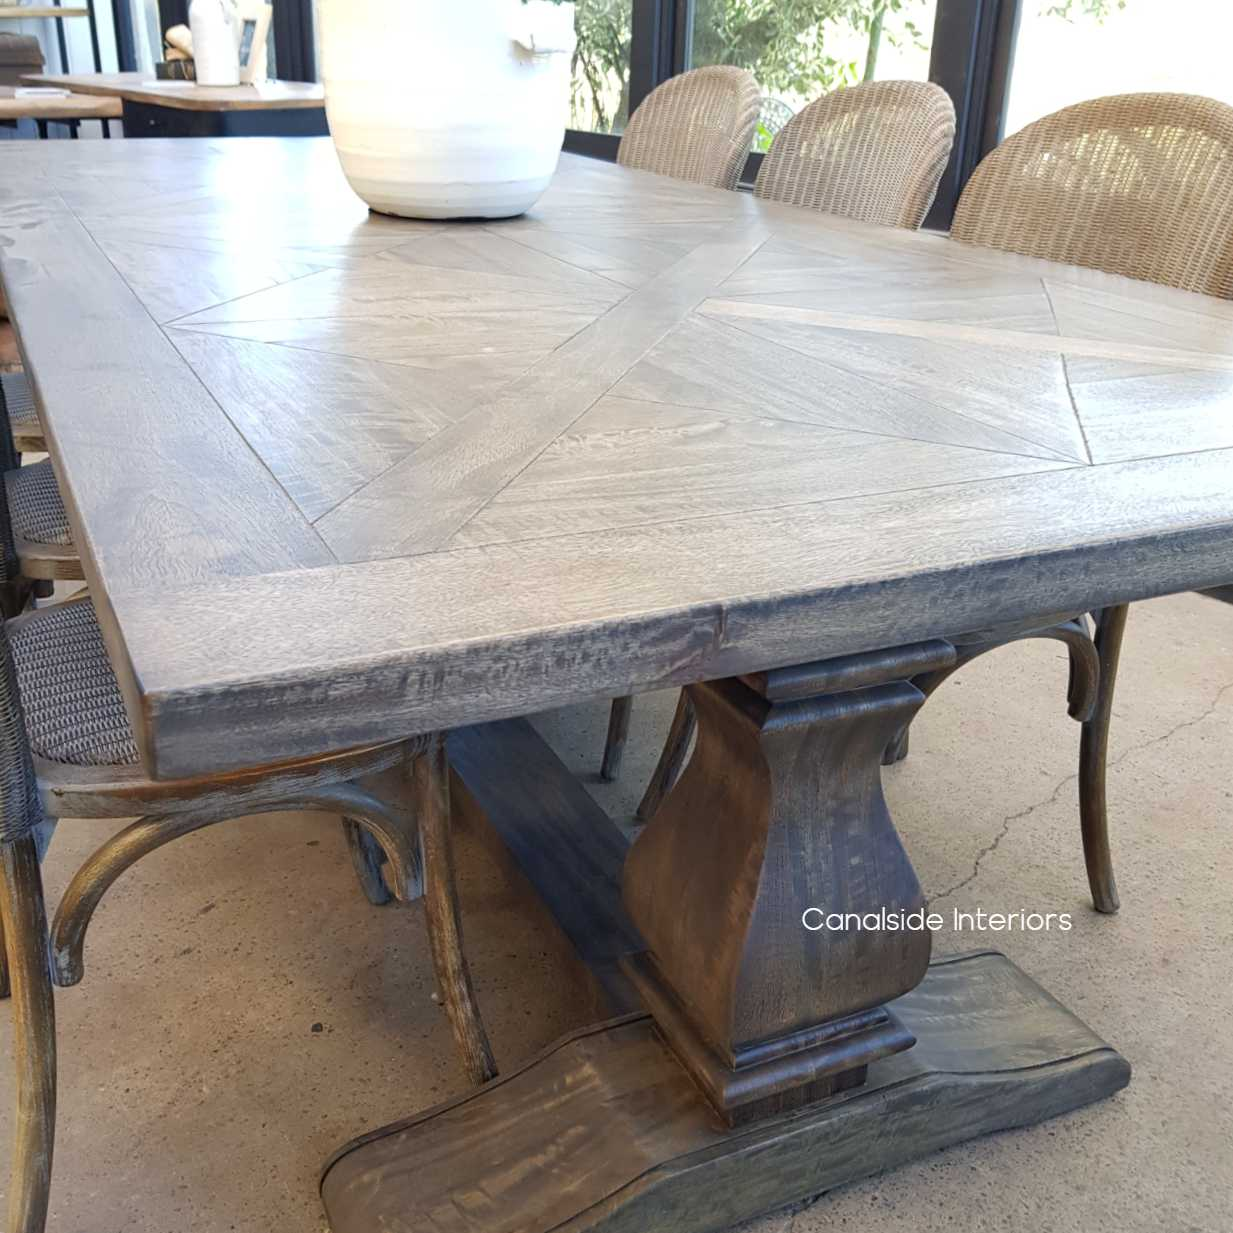 Bridgehampton Parquetry Dining Table tables, hamptons, hamptons, hampton table, provincial, plantation, dining tables, trestle base, dining room